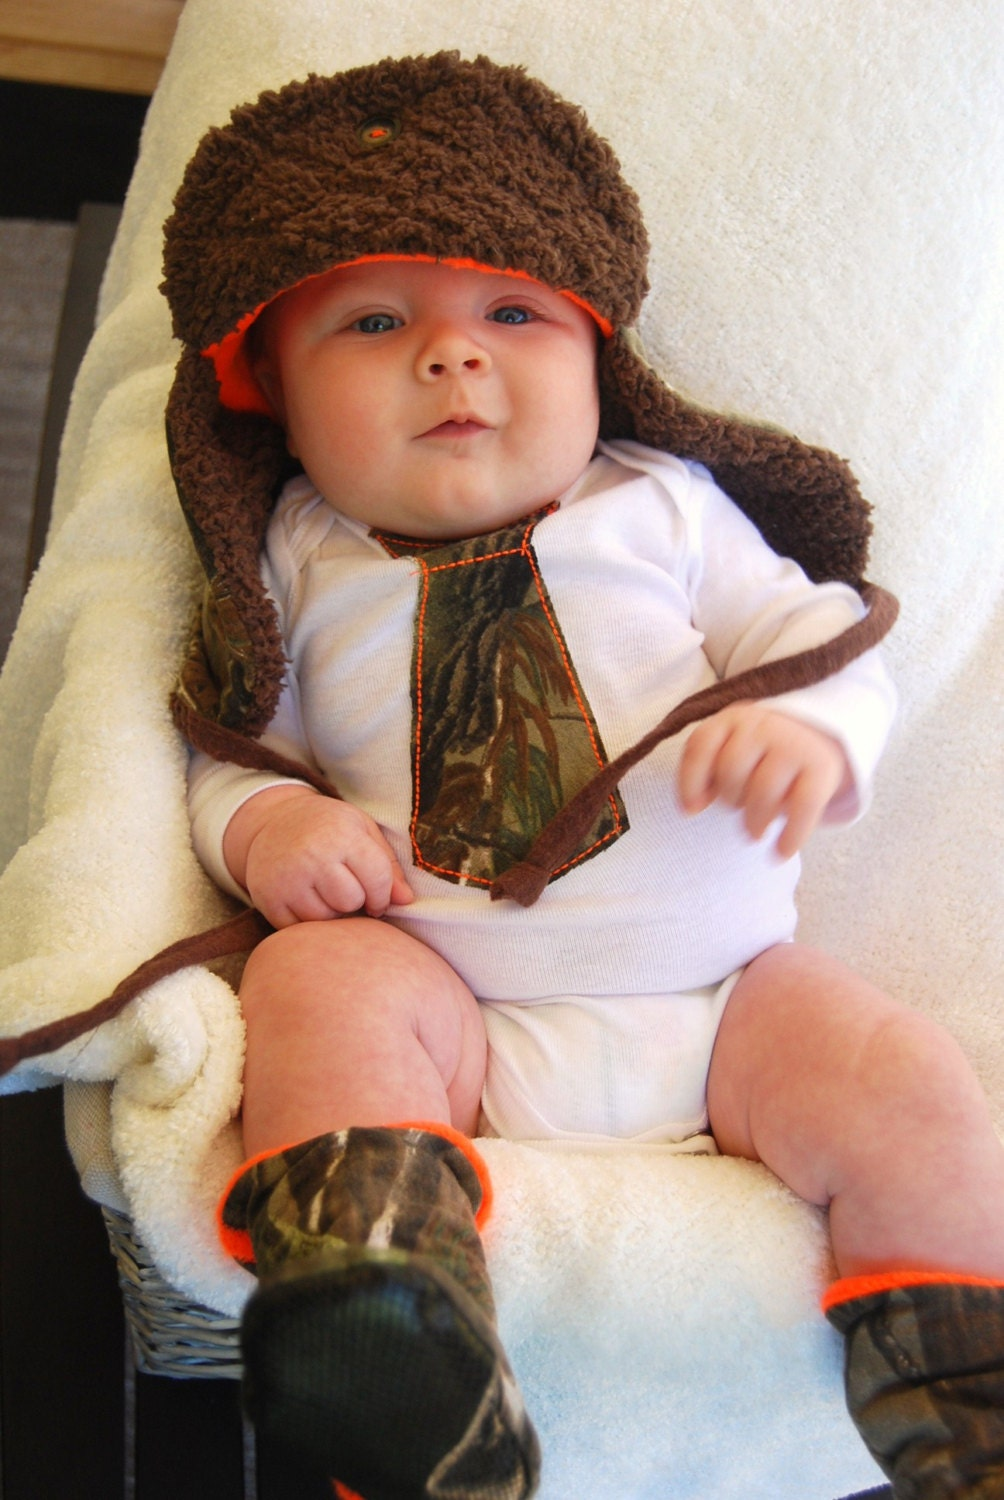 Duck Dynasty Inspired Realtree Camo Baby By Maxinessewnsew  sc 1 st  Meningrey & Baby Duck Dynasty Costume - Meningrey